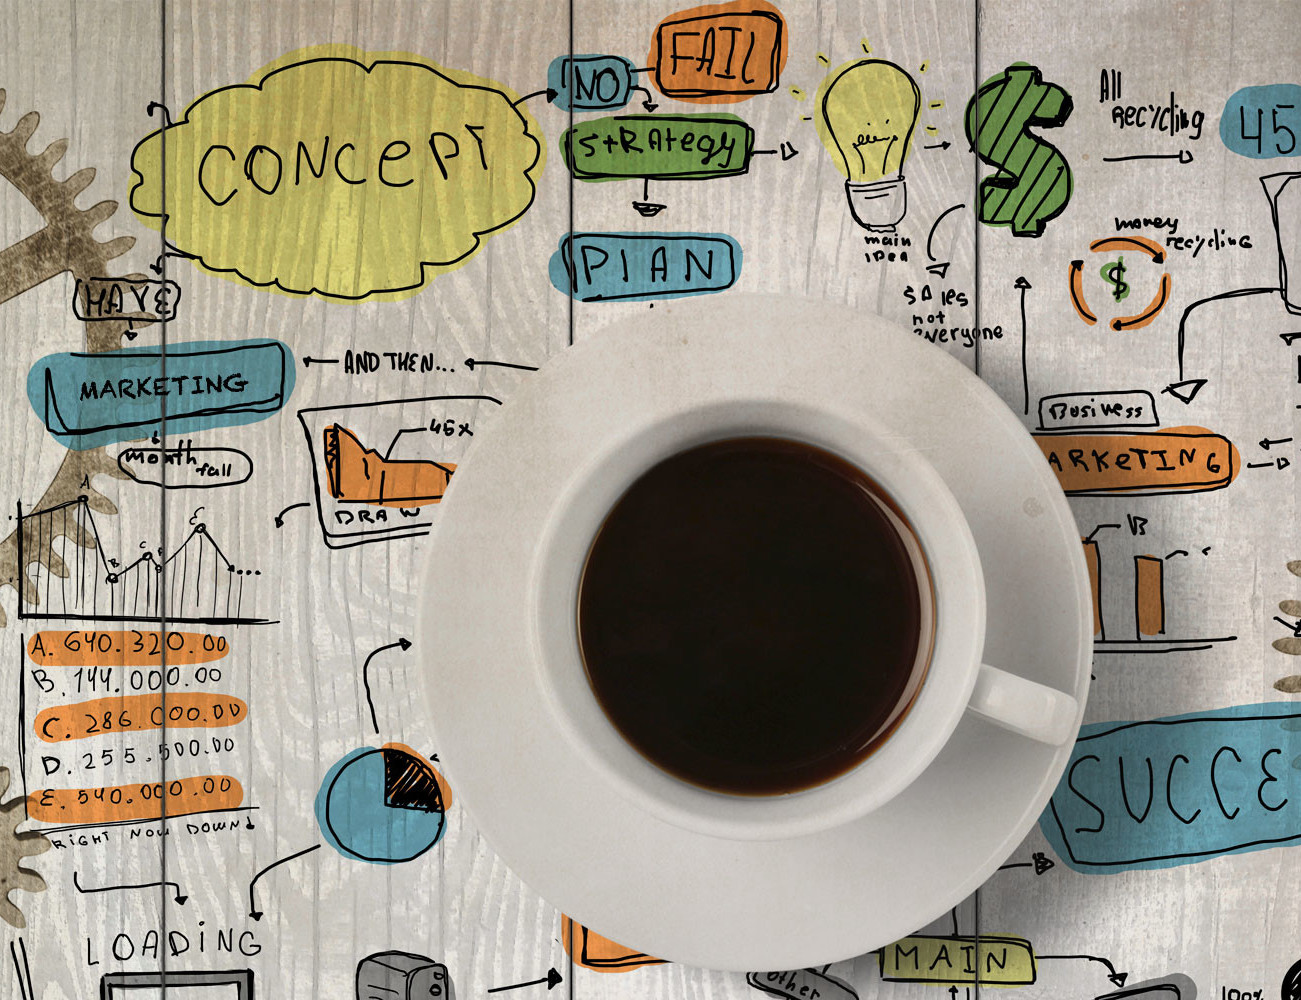 Marketing strategy plan text cloud visualization with cup of coffee.